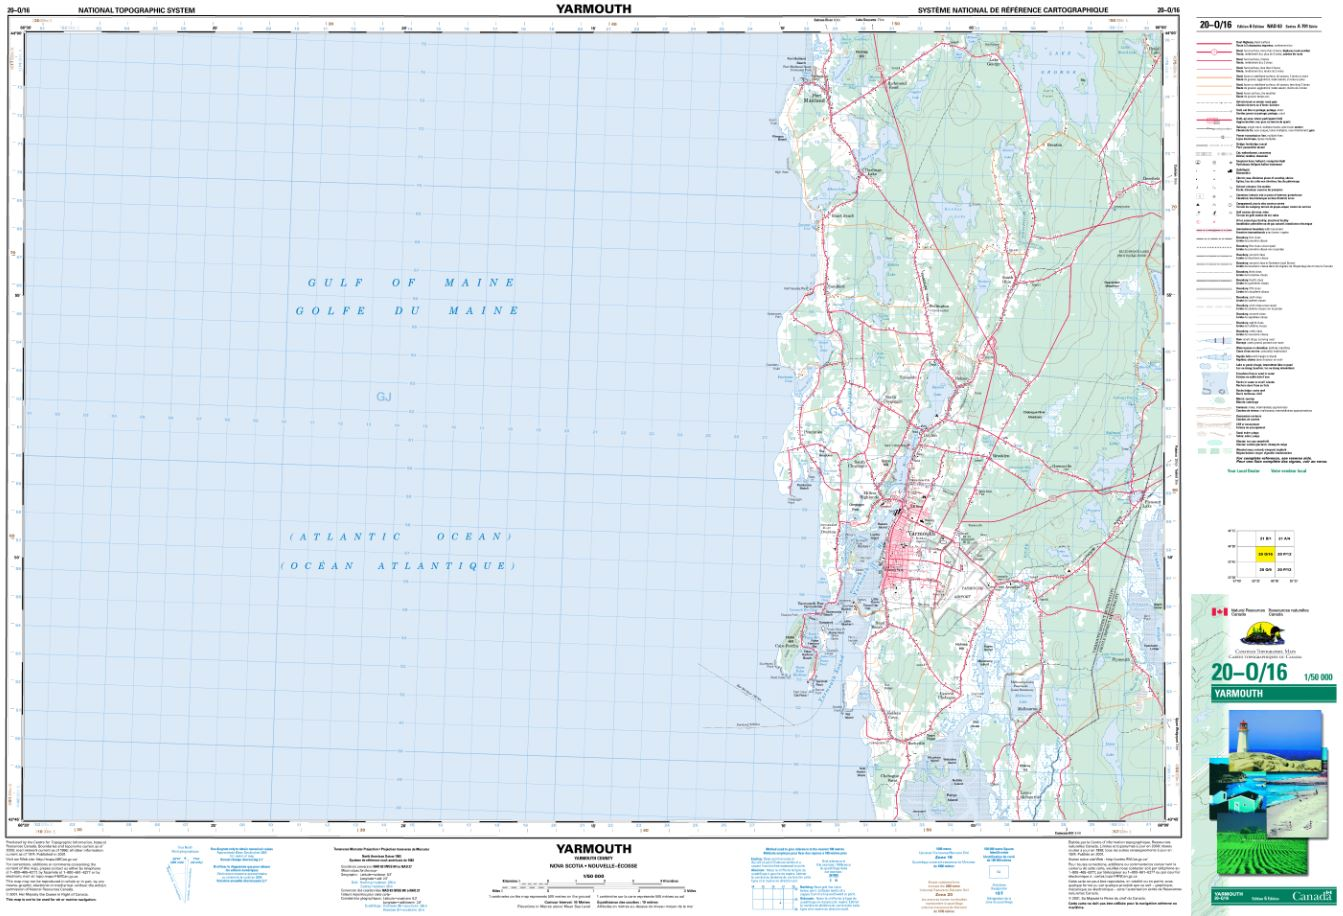 20O/16 Yarmouth Topographic Map Nova Scotia